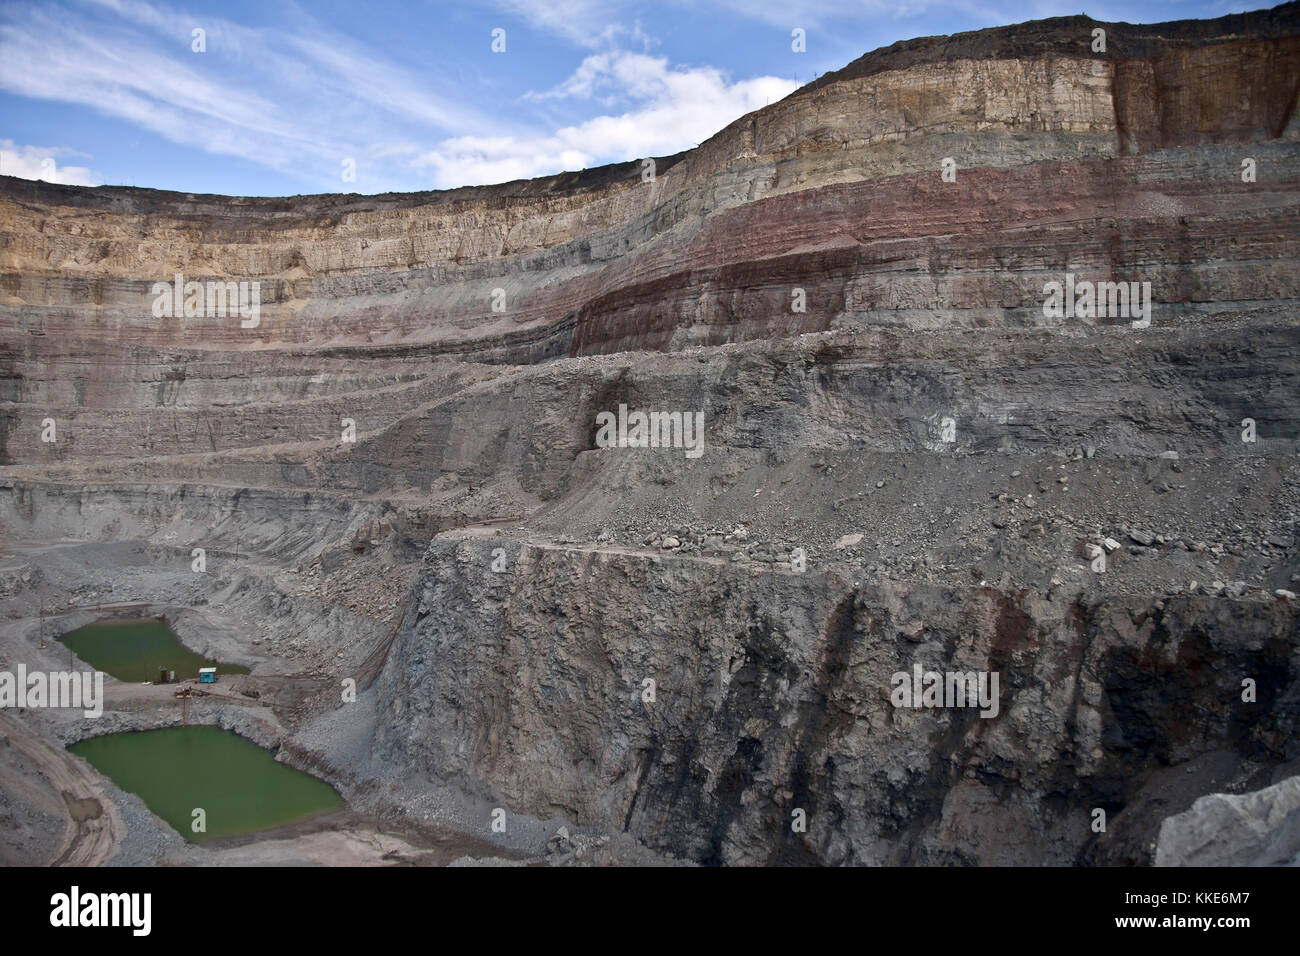 Aerial View Of Open Pit Copper Mine Stock Photos & Aerial